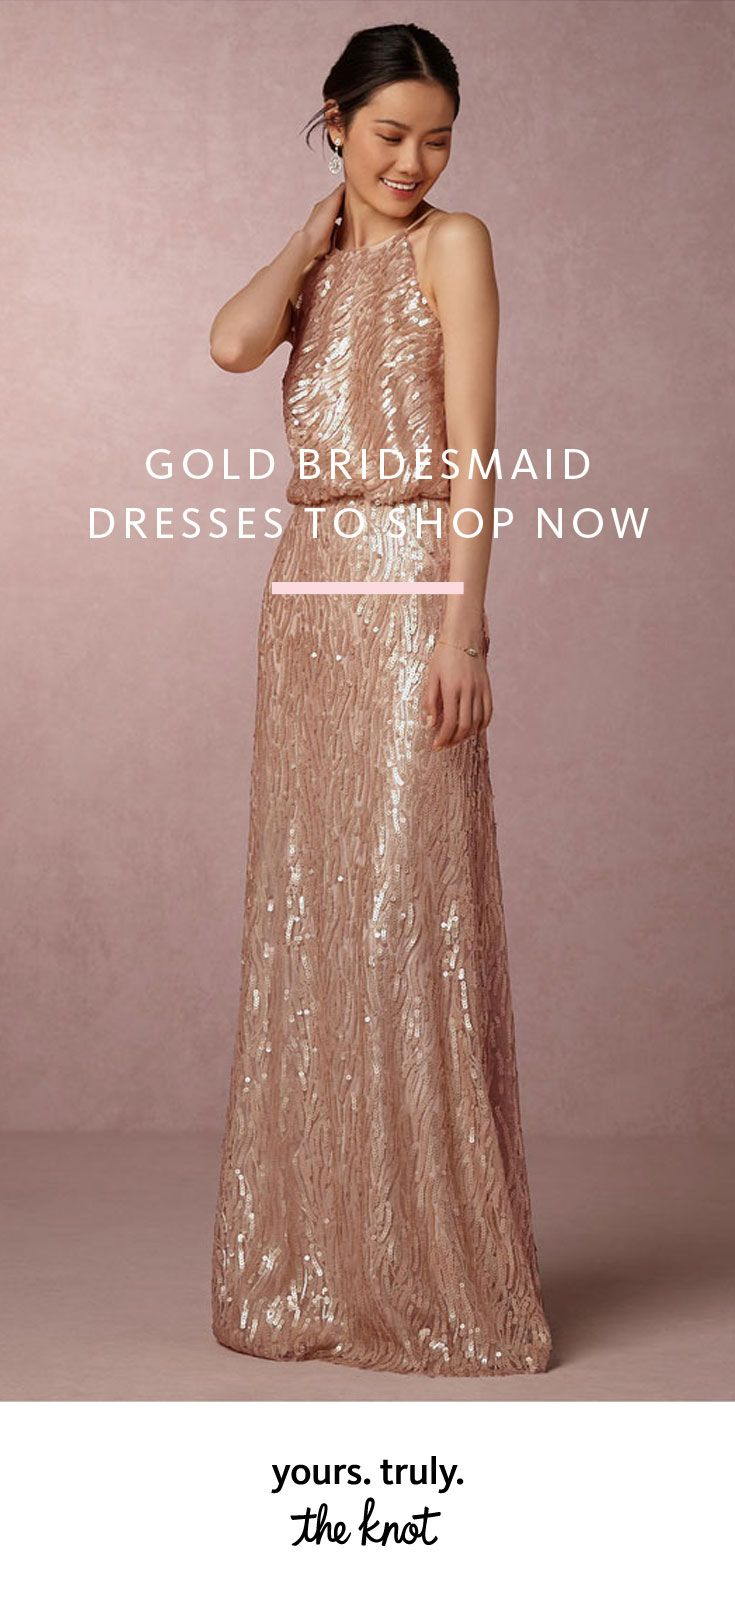 Long and short gold metallic bridesmaid dresses to shop now